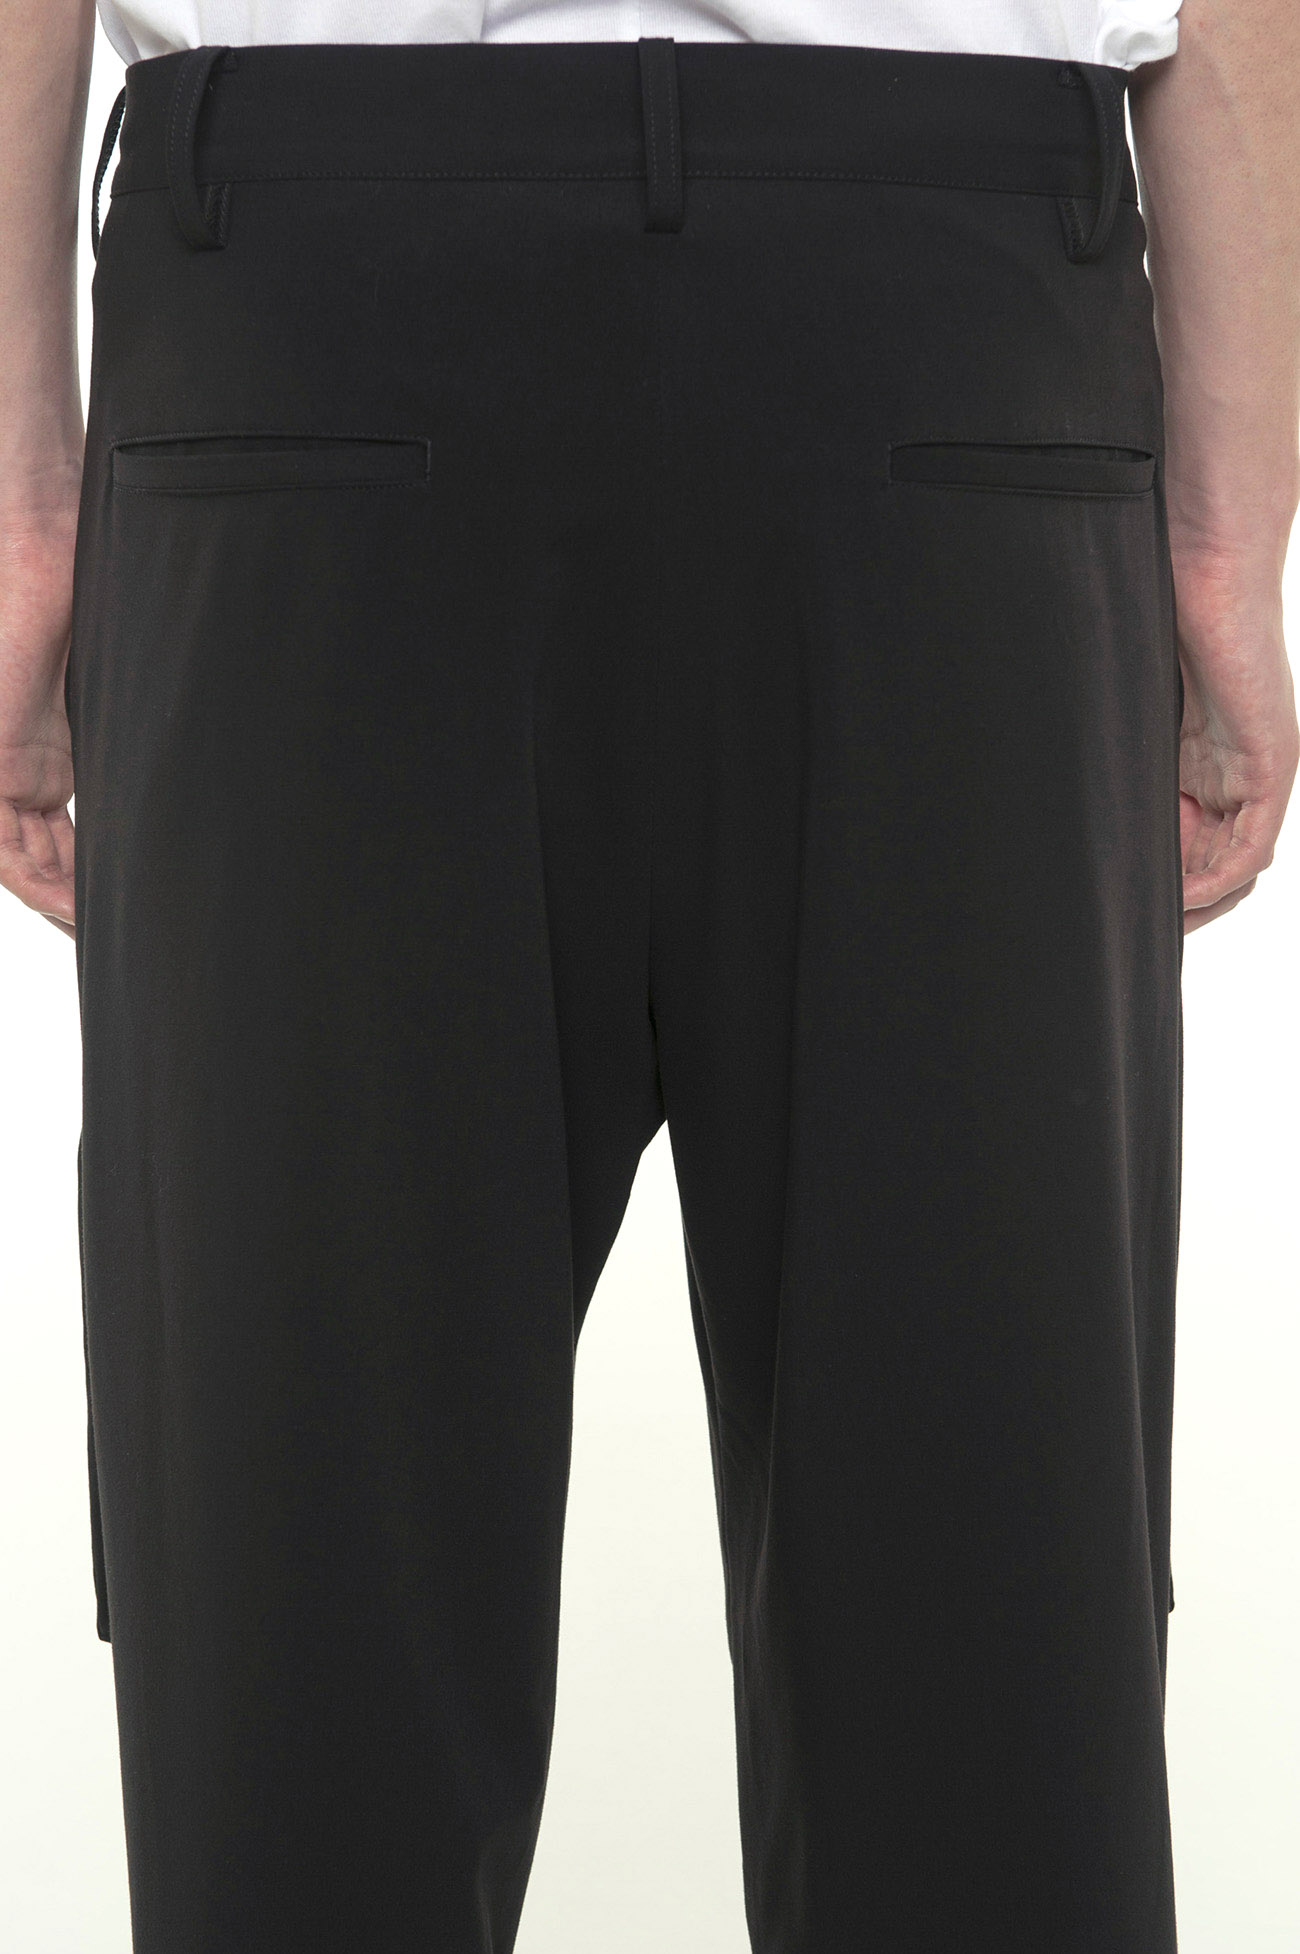 Pe/Rayon Gabardine Stretch Bondage Zipper Cargo Pants